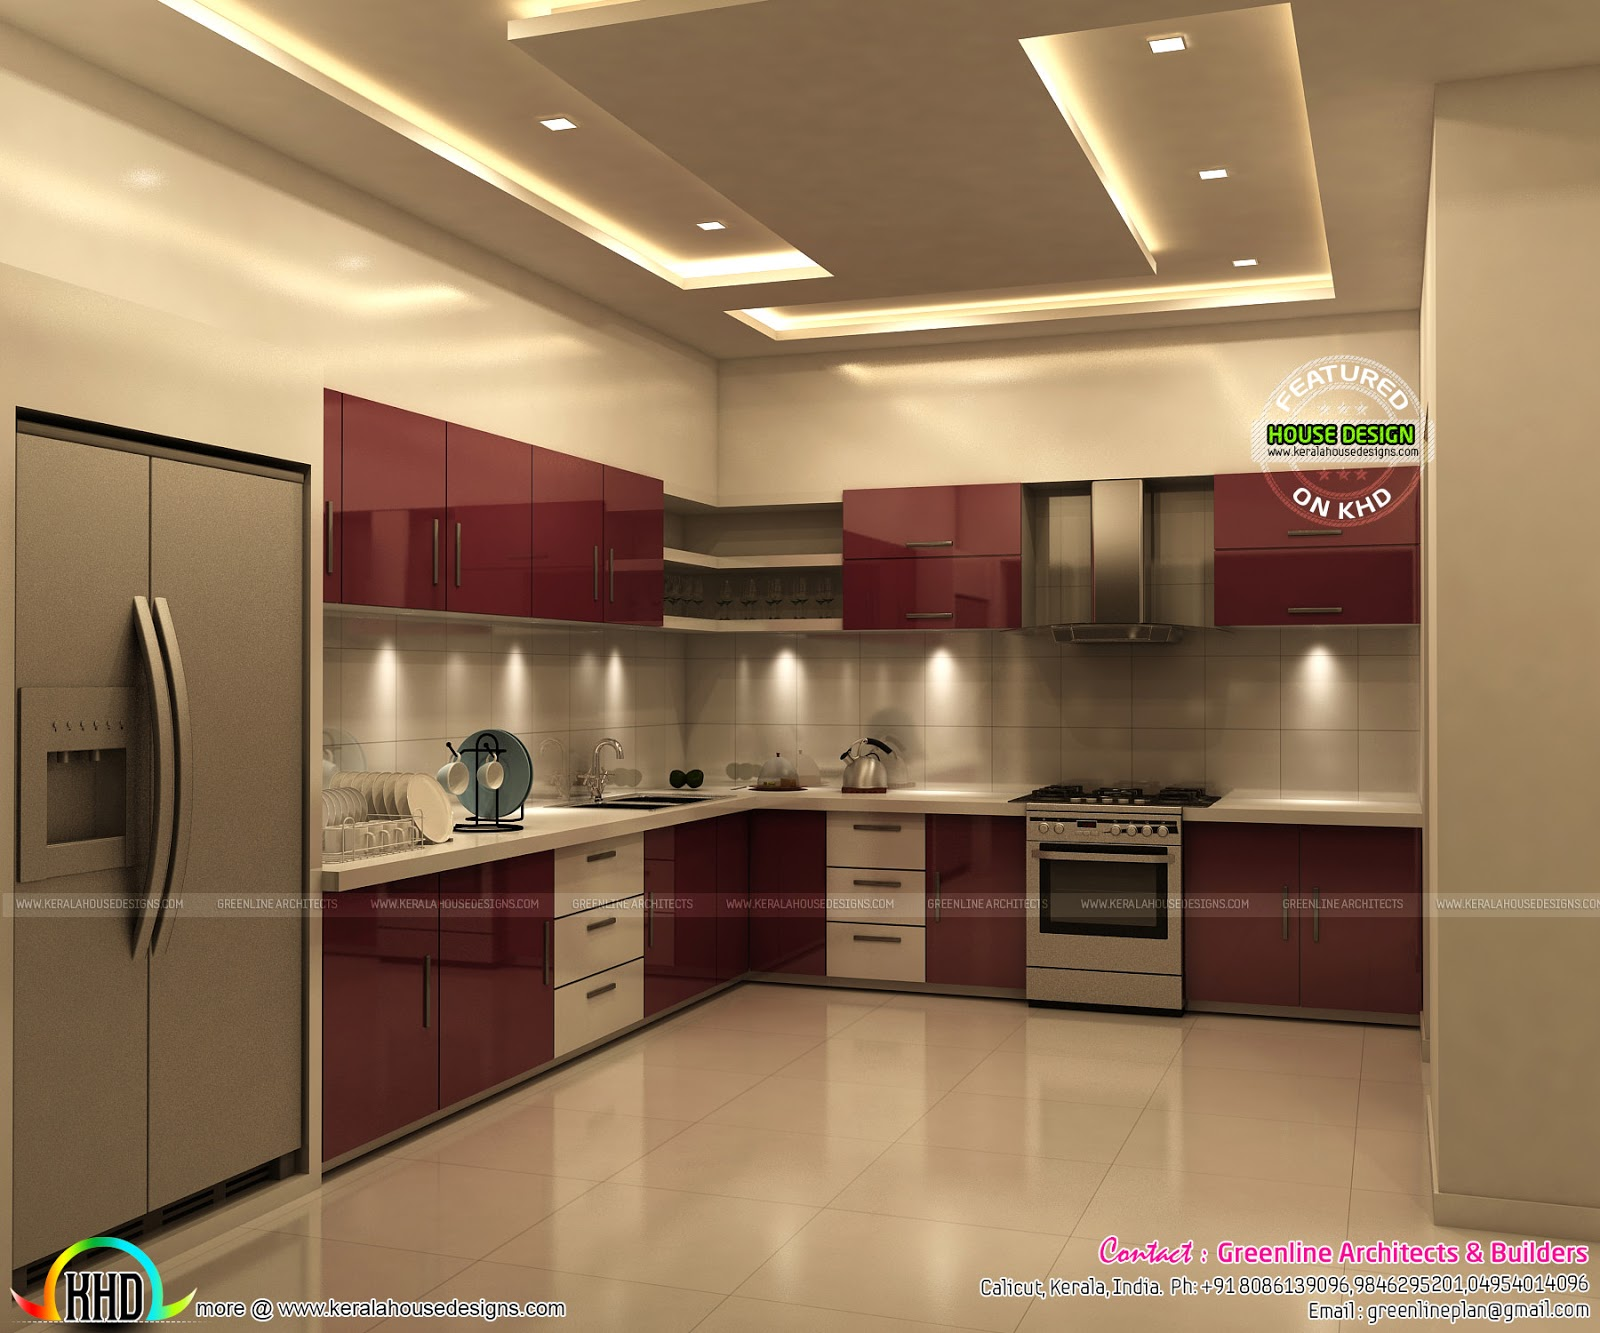 Superb kitchen and bedroom interiors kerala home design for One bedroom house interior design